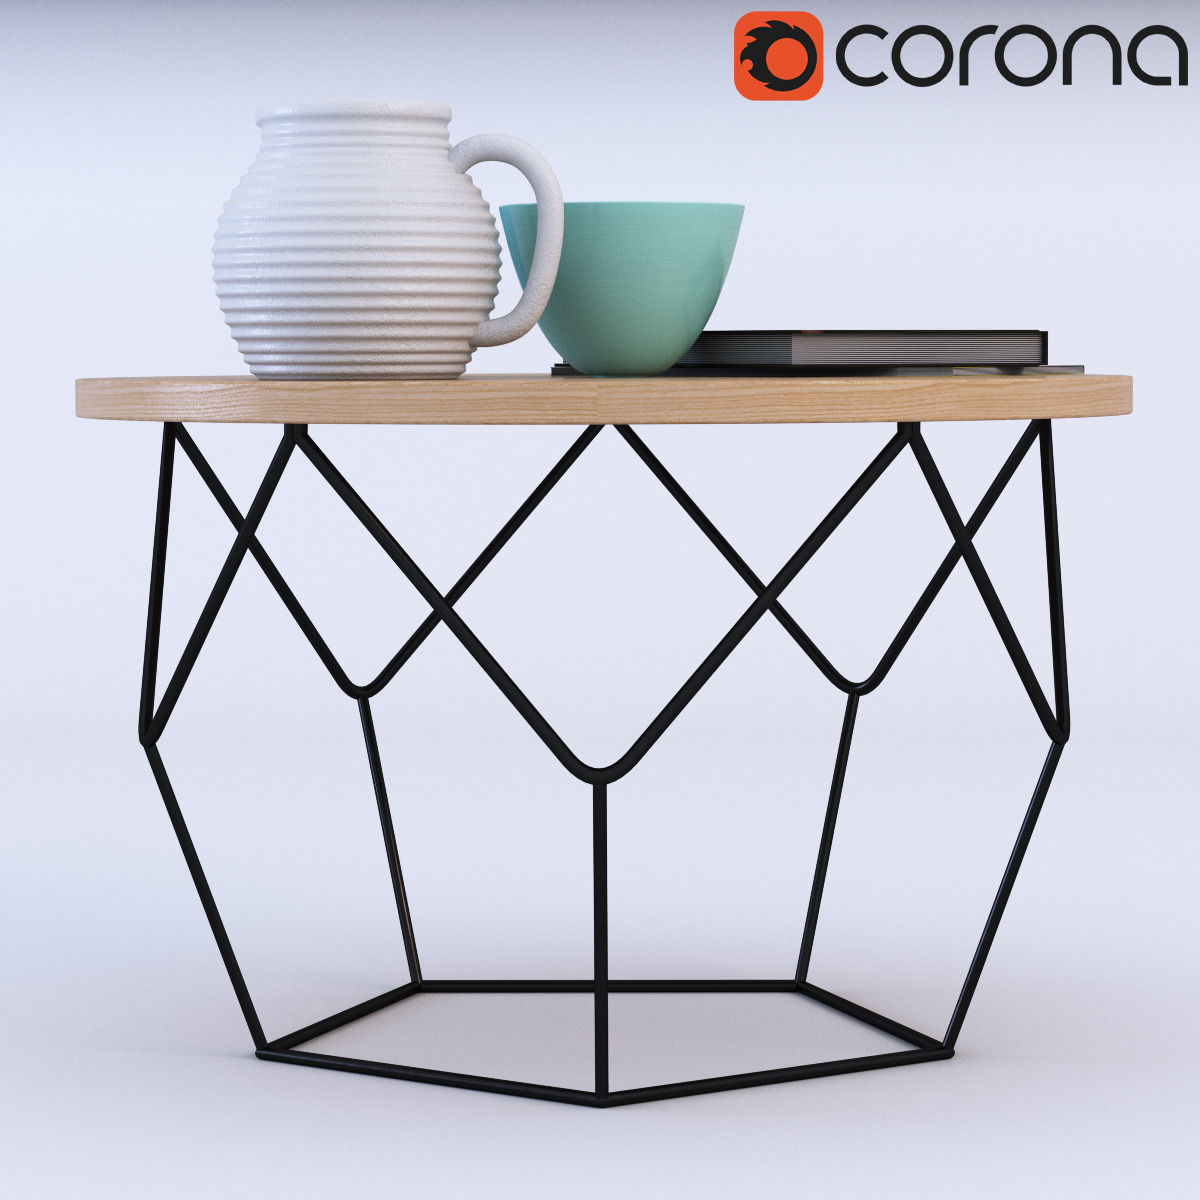 ... West Elm Origami Coffee Table 3d Model Max Obj Fbx Mtl 2 ...